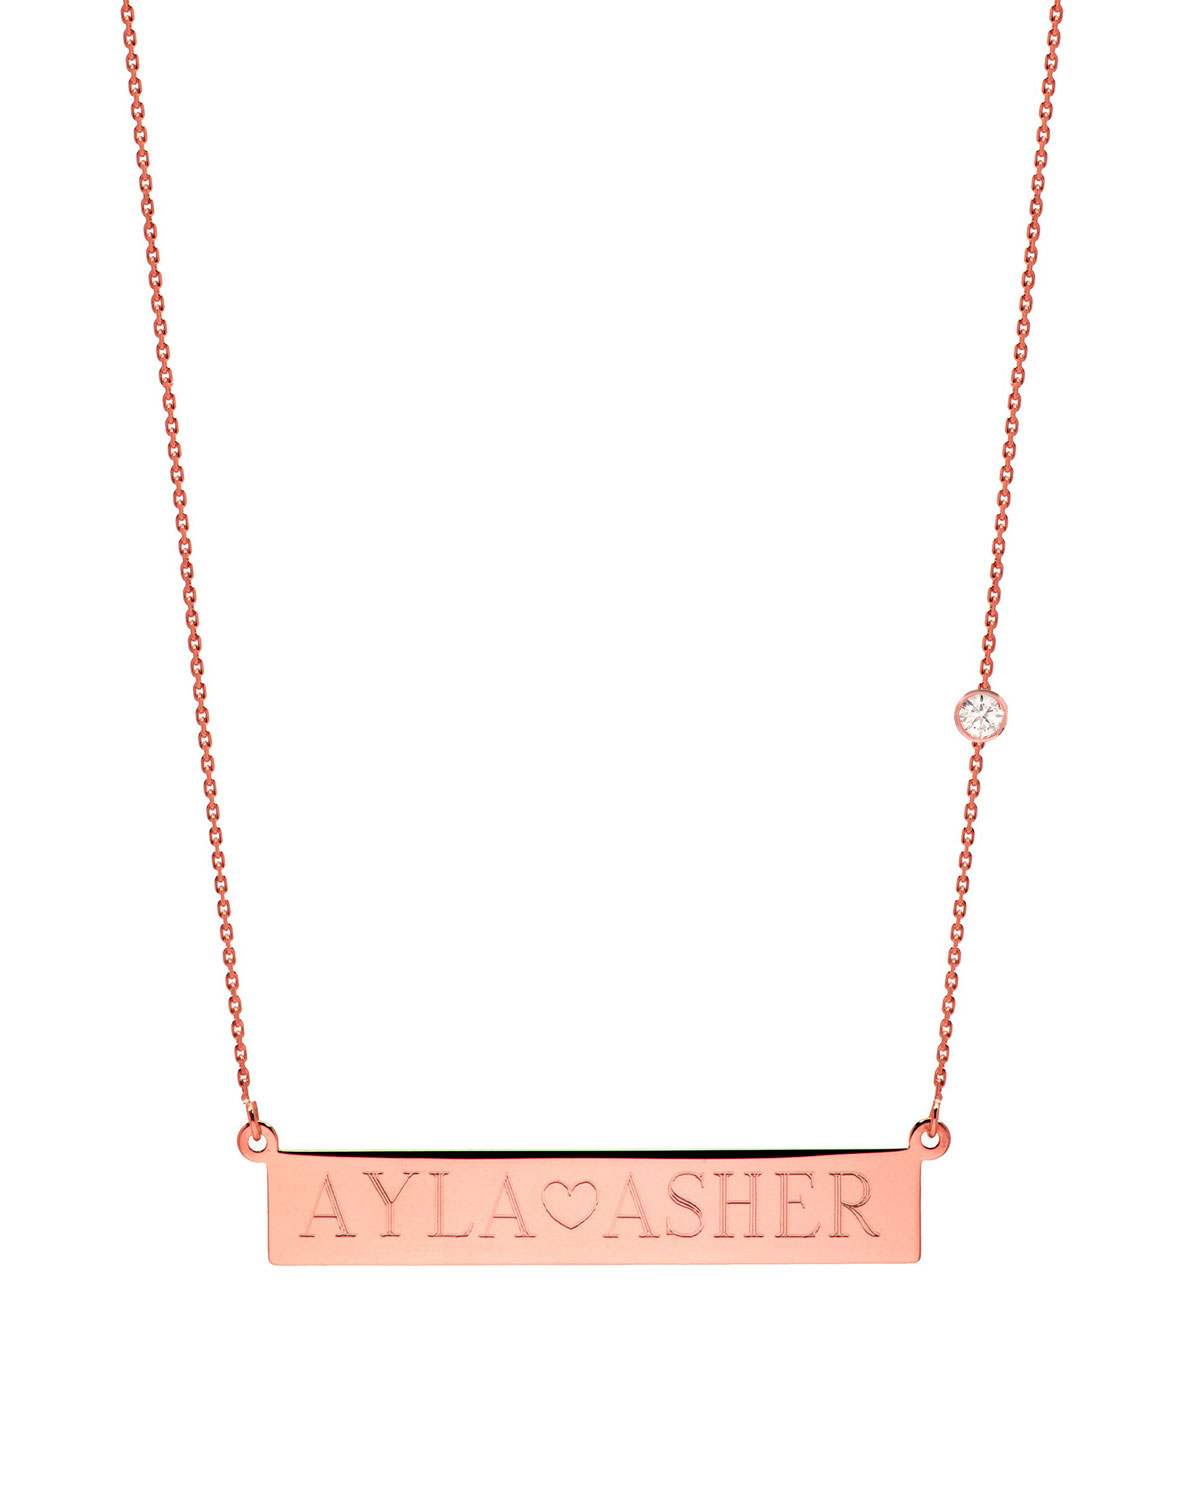 zoe lev jewelry personalized nameplate necklace w diamond. Black Bedroom Furniture Sets. Home Design Ideas